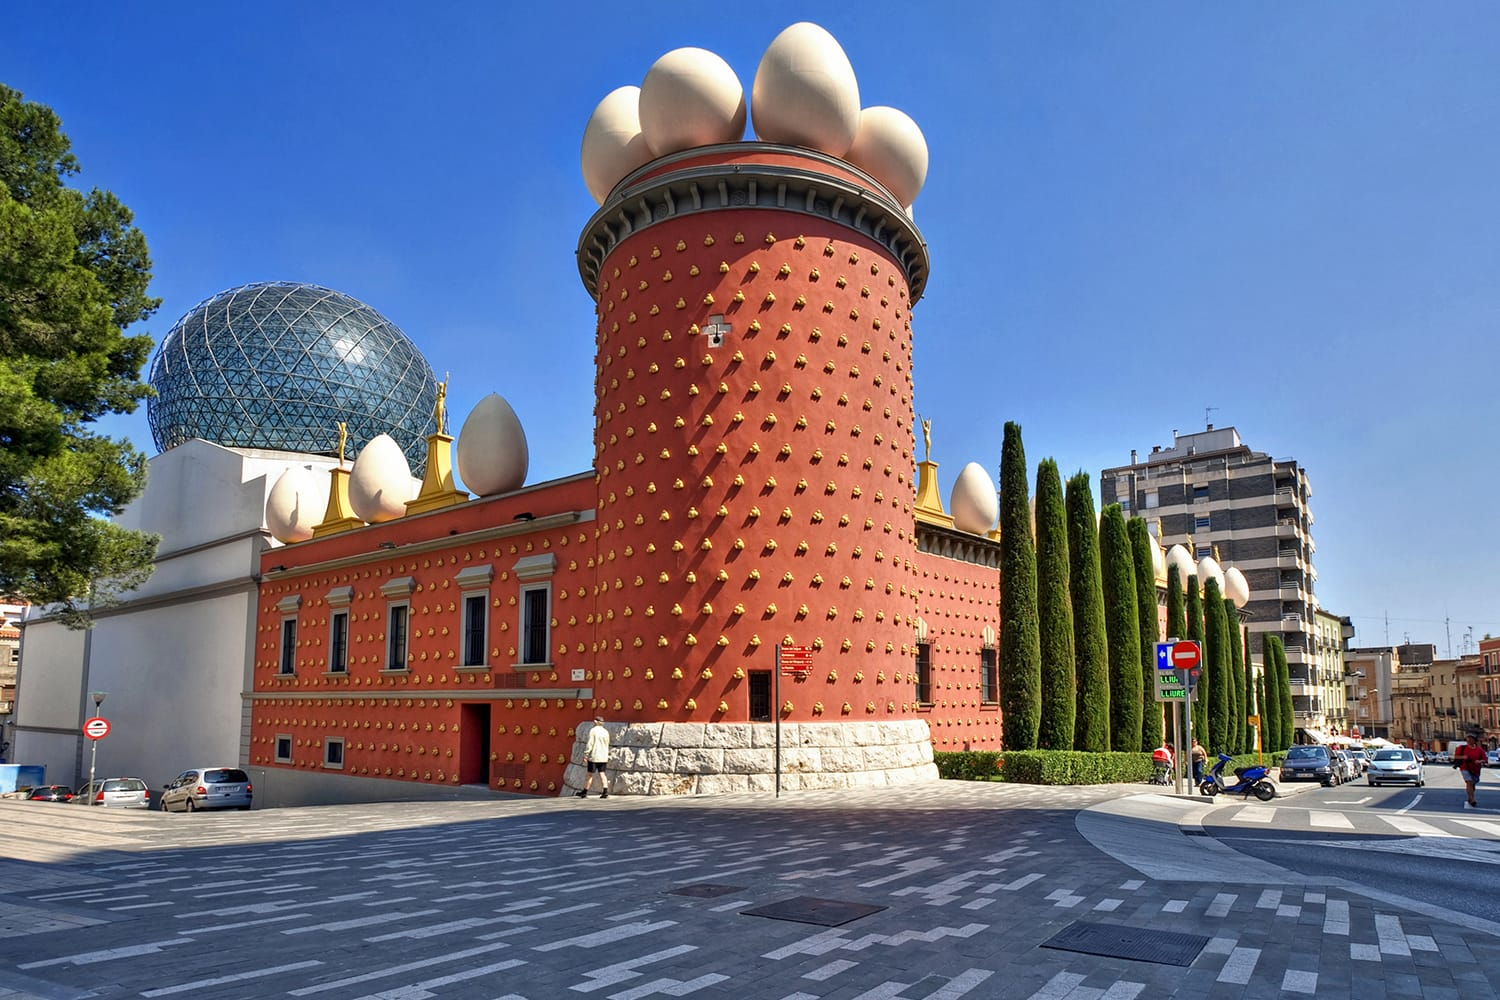 The Dali Theatre and Museum in Figueres, Spain